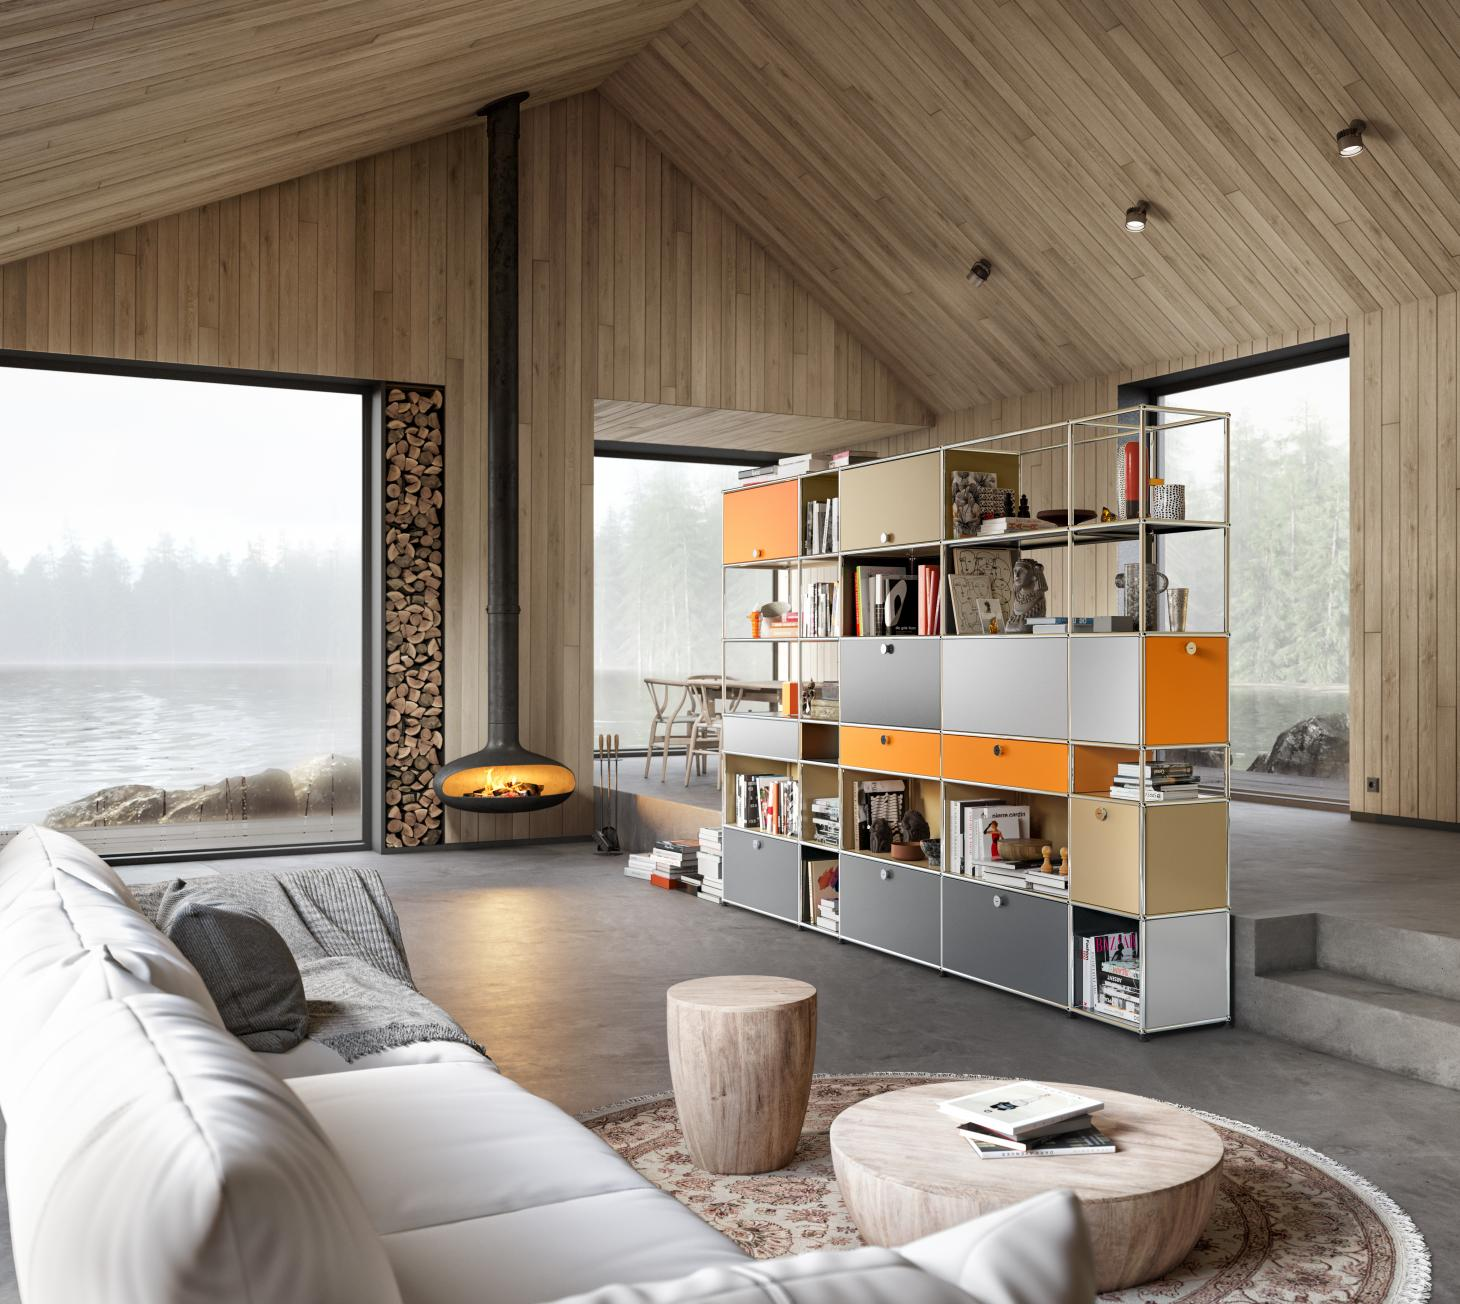 Wood clad room with large windows overlooking the sea, fireplace and USM Haller storage